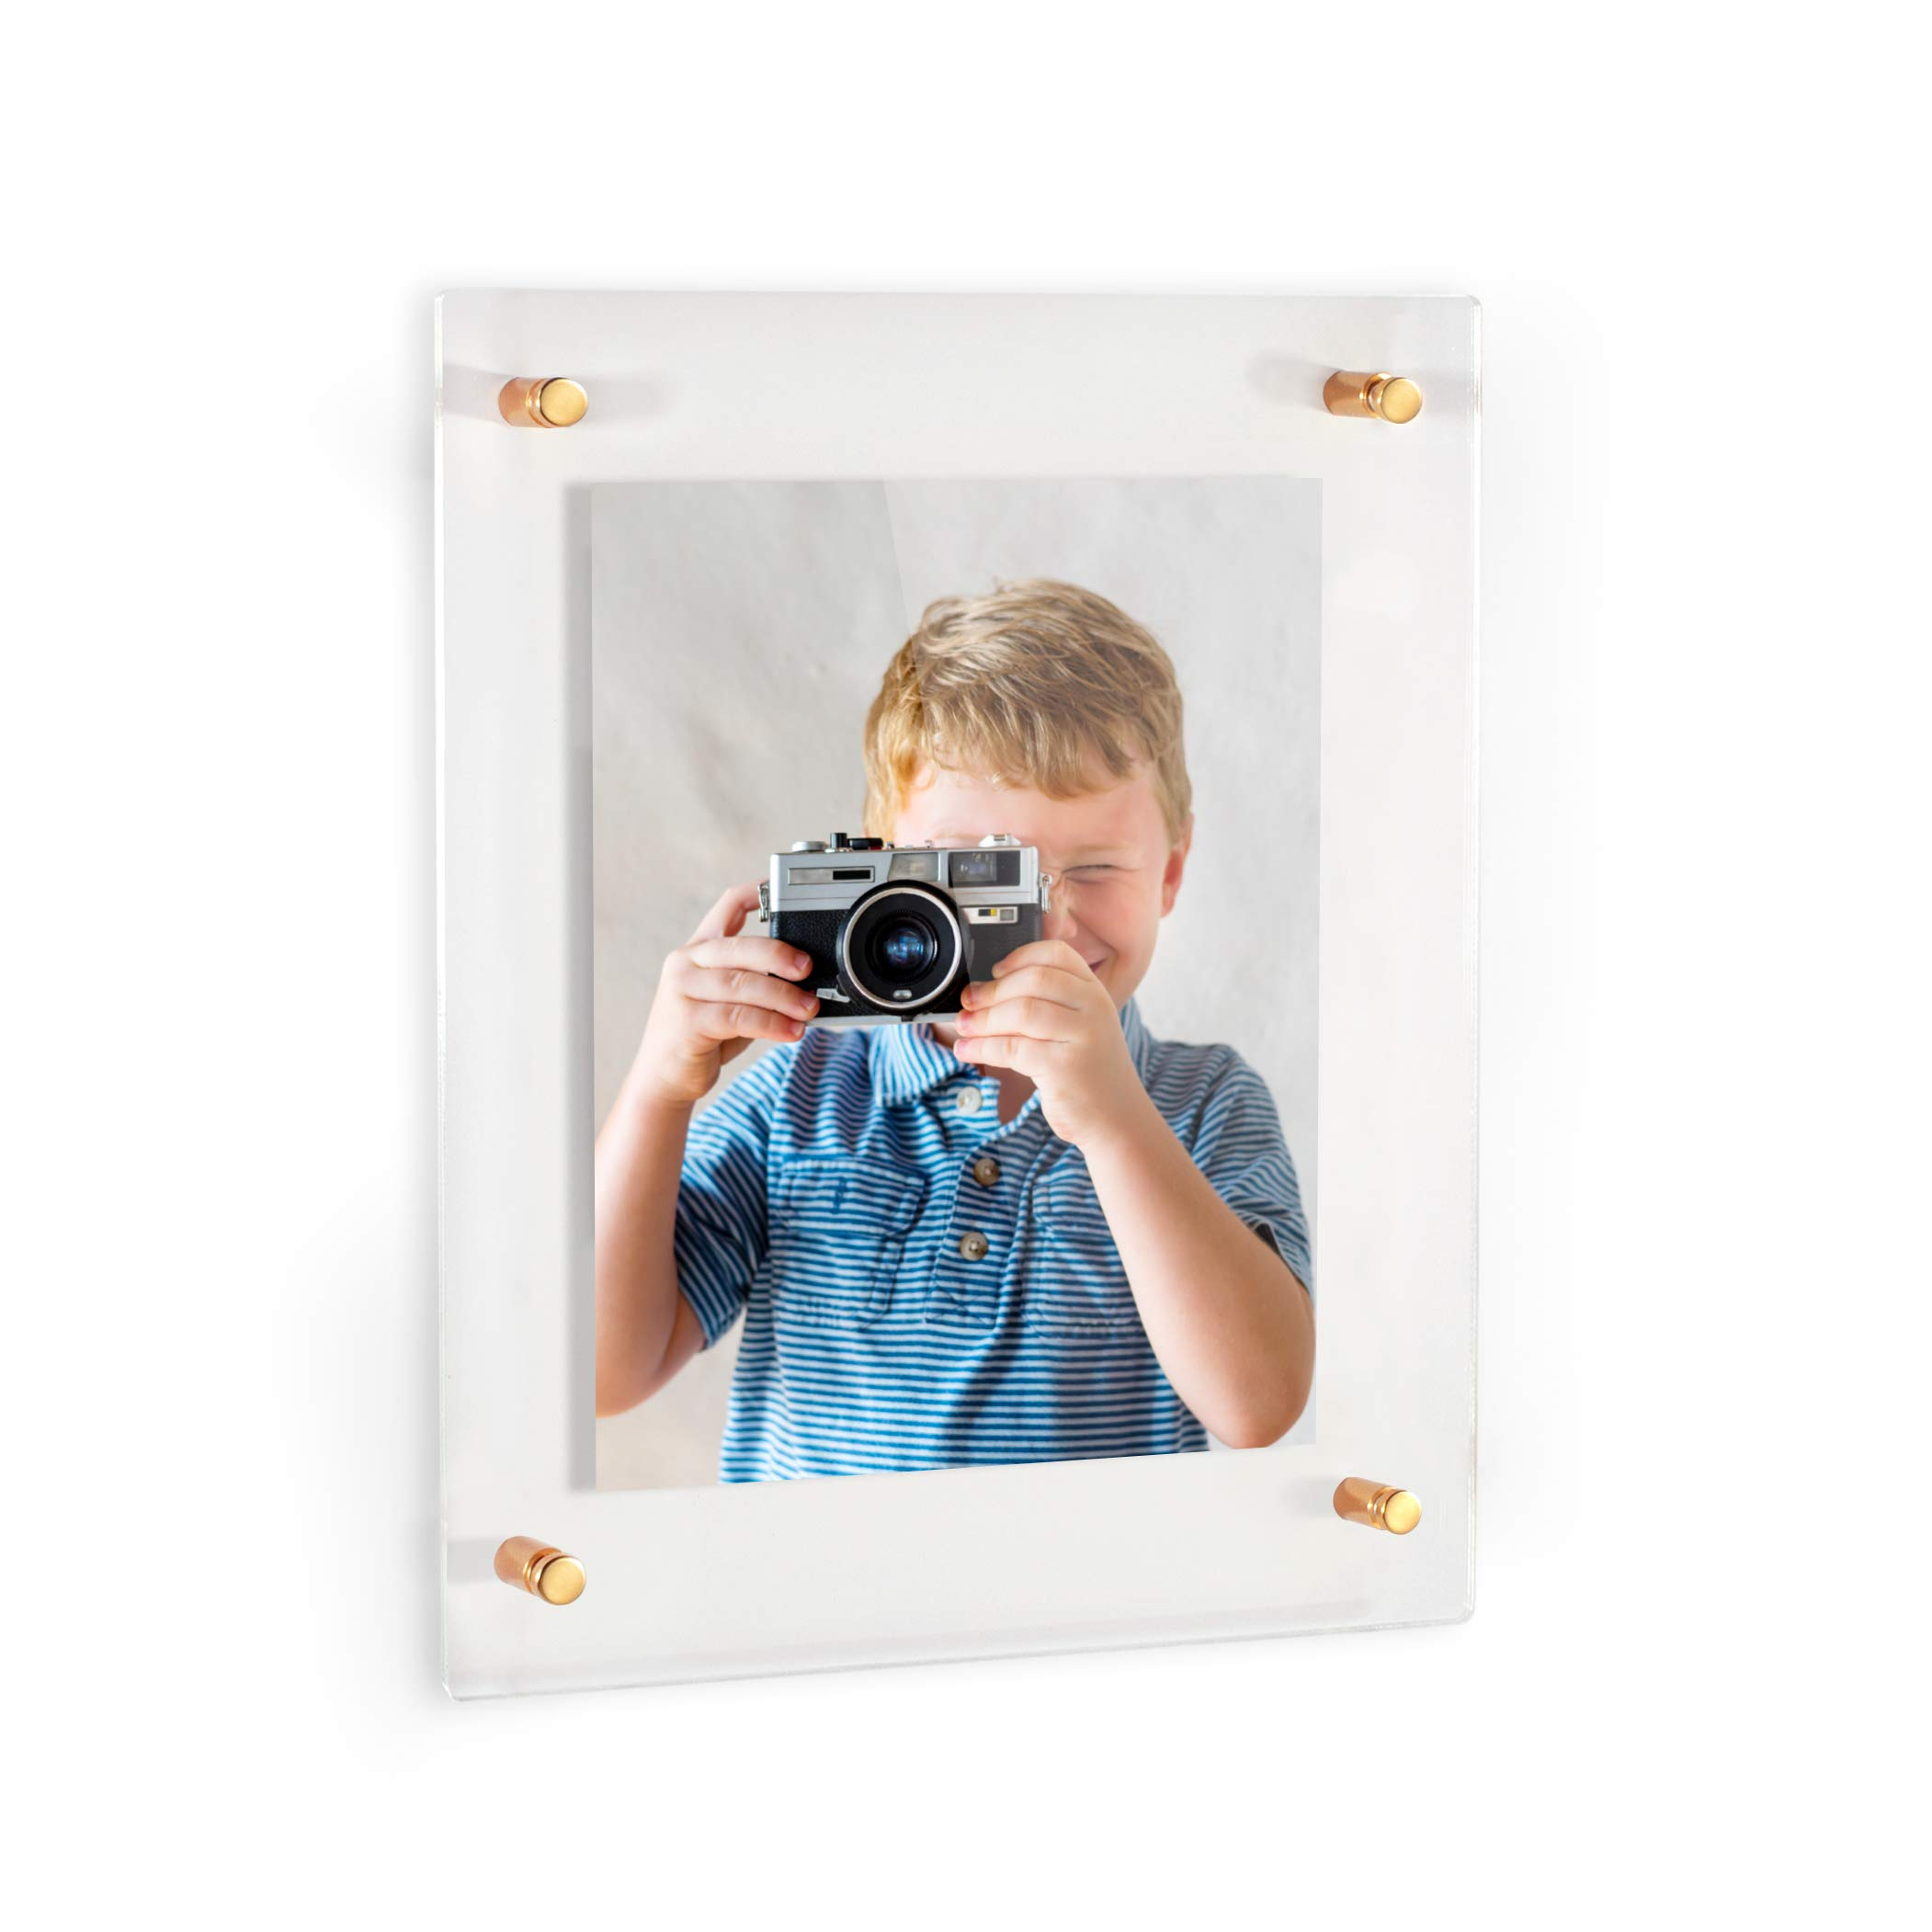 ArtToFrames Floating Acrylic Frame for Pictures Up to 16x20 inches (Full Frame is 20x24) with Gold Standoff Wall Mount Hardware, Acrylic-109-16x20-71